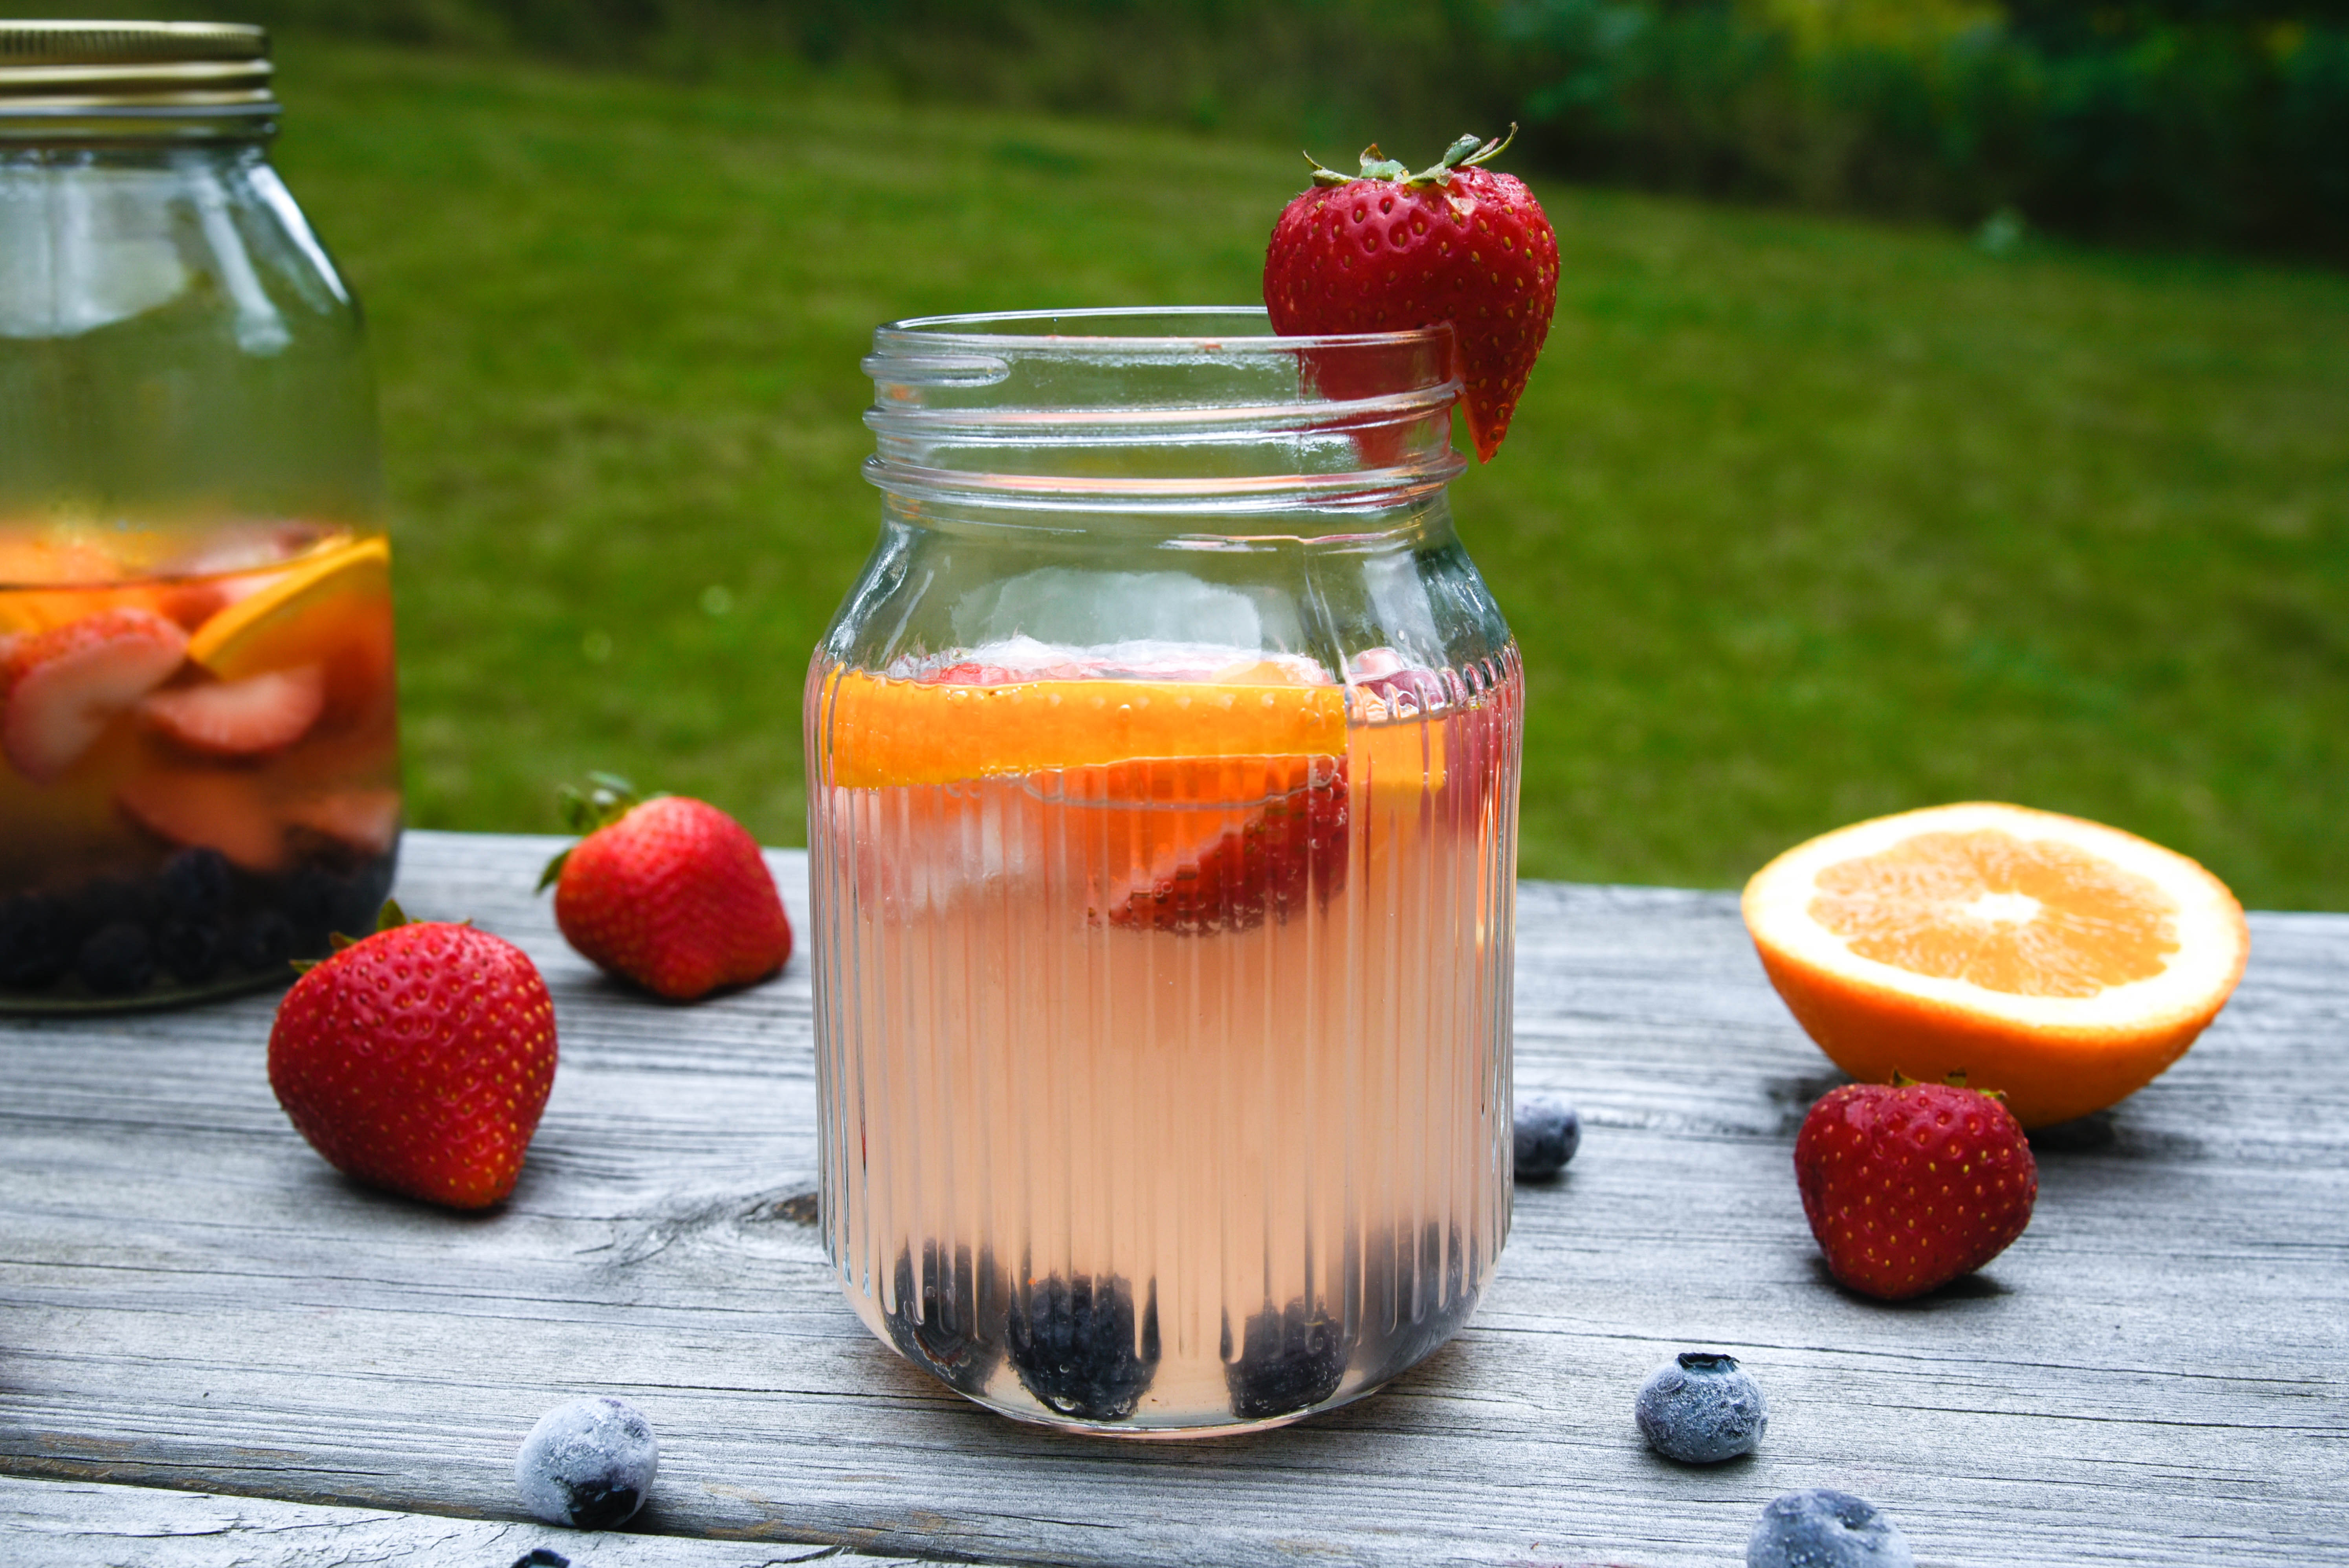 Jar with strawberry slice on rim surrounded by other fruit.